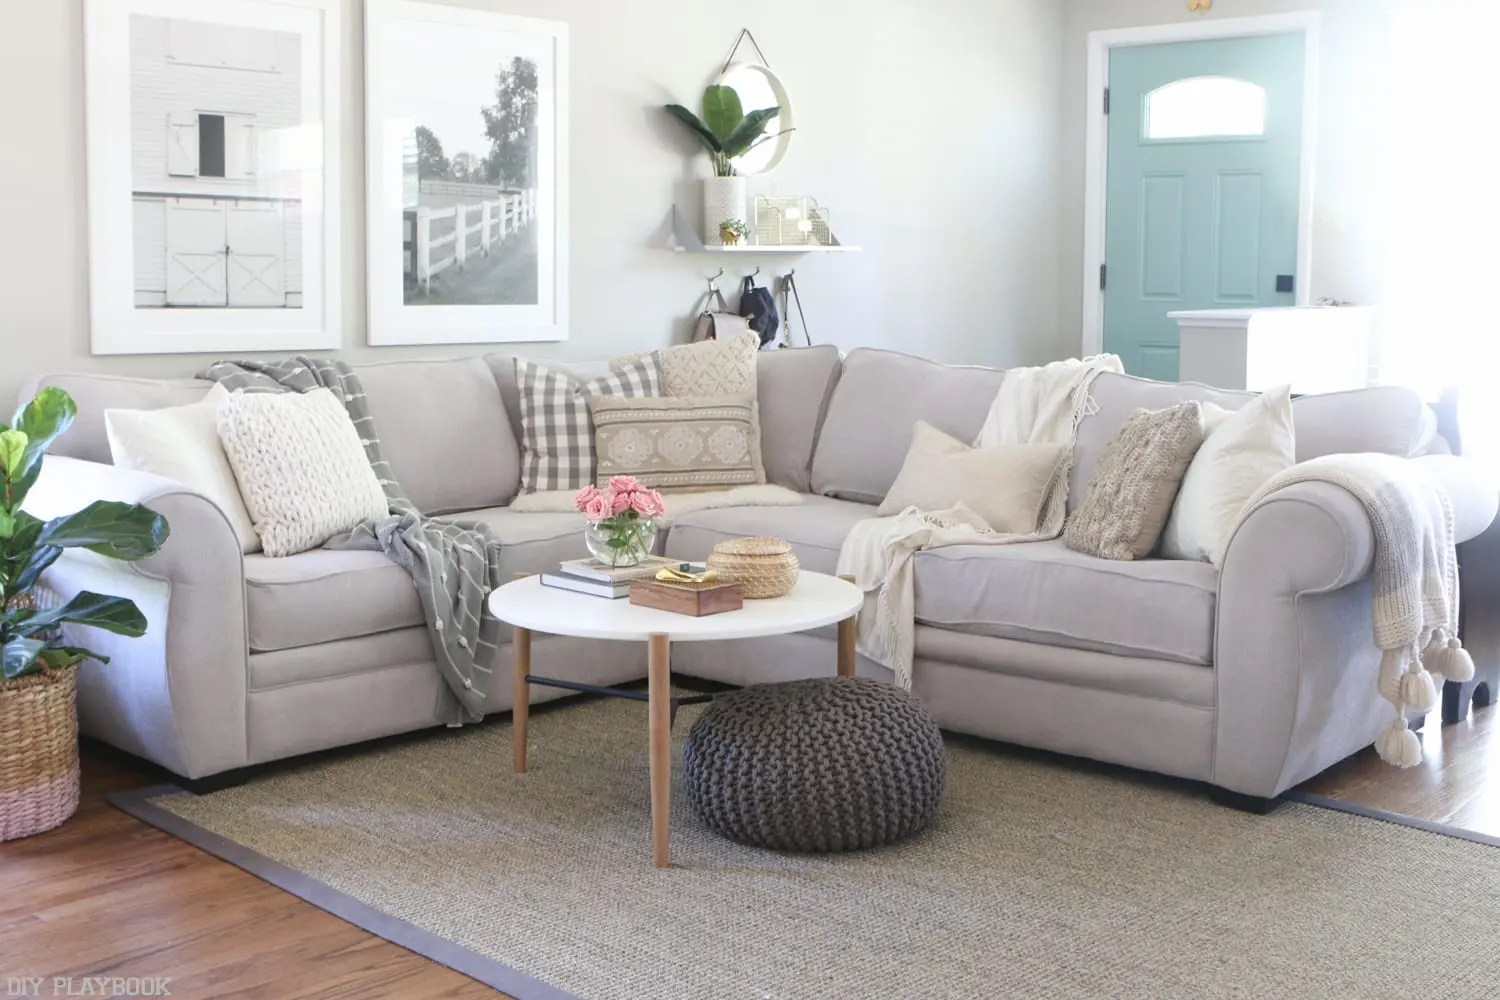 how can i clean my sofa james amart to couch cushions in four easy steps